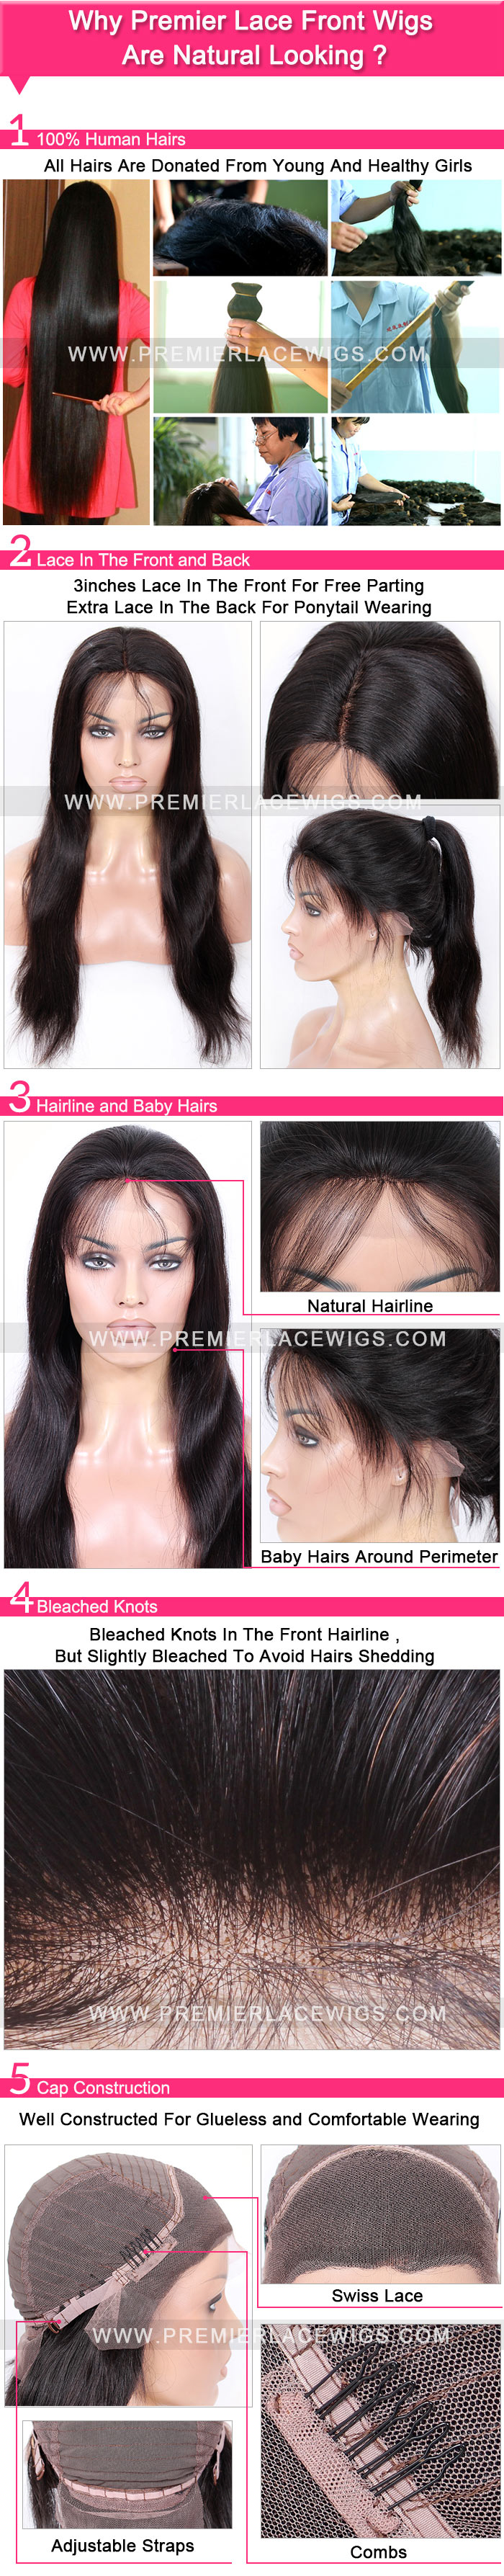 Why Premier Lace Front Wigs Are Natural Looking